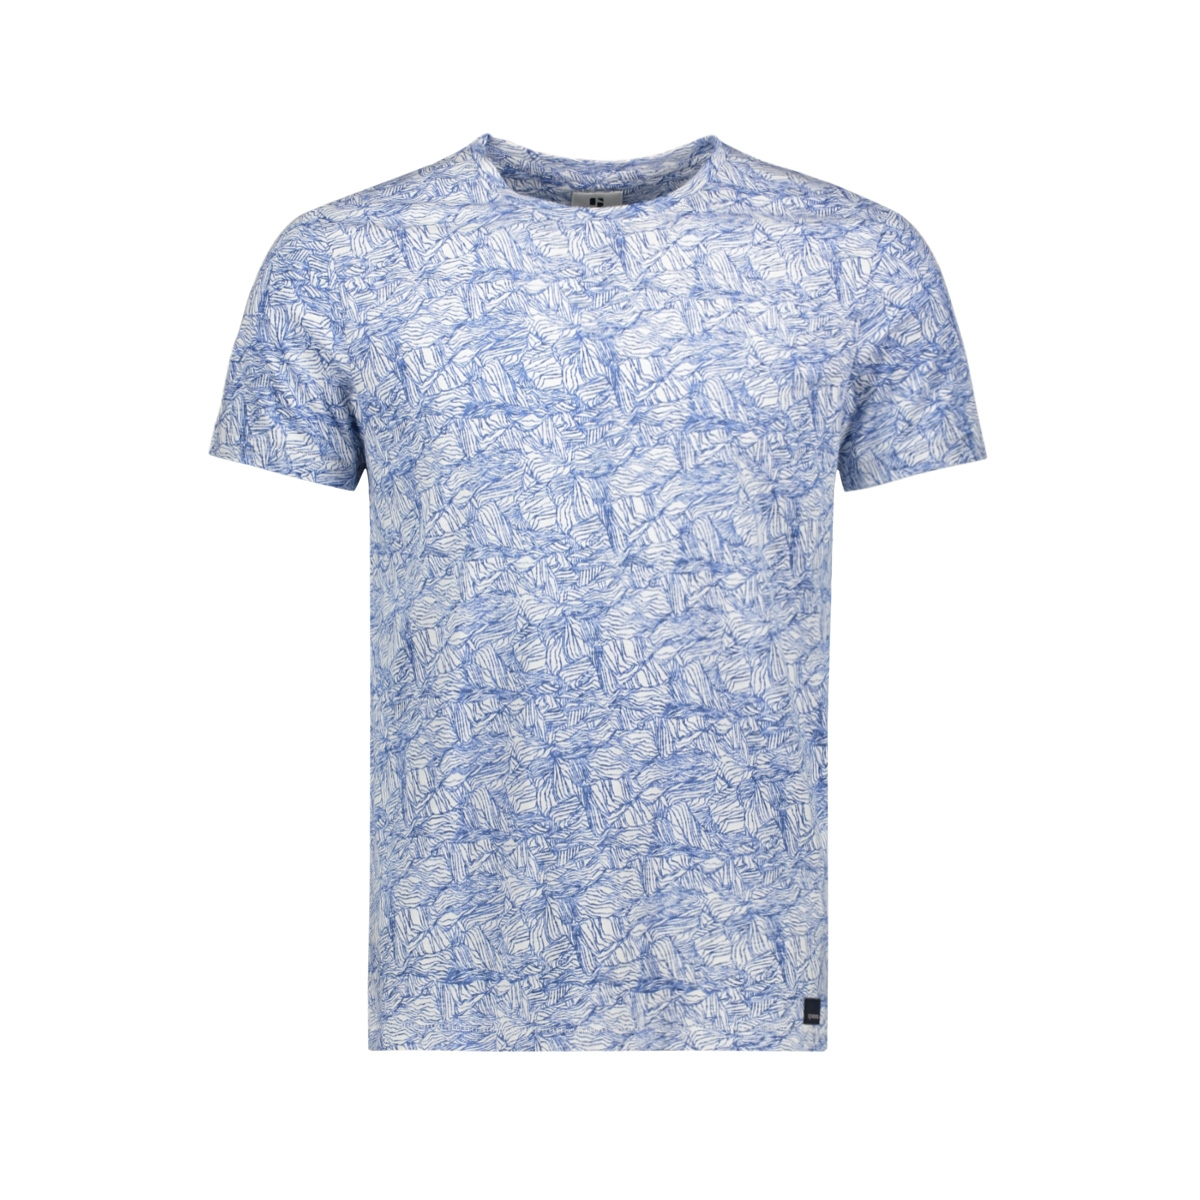 t shirt met all over print g91008 garcia t-shirt 53 off white